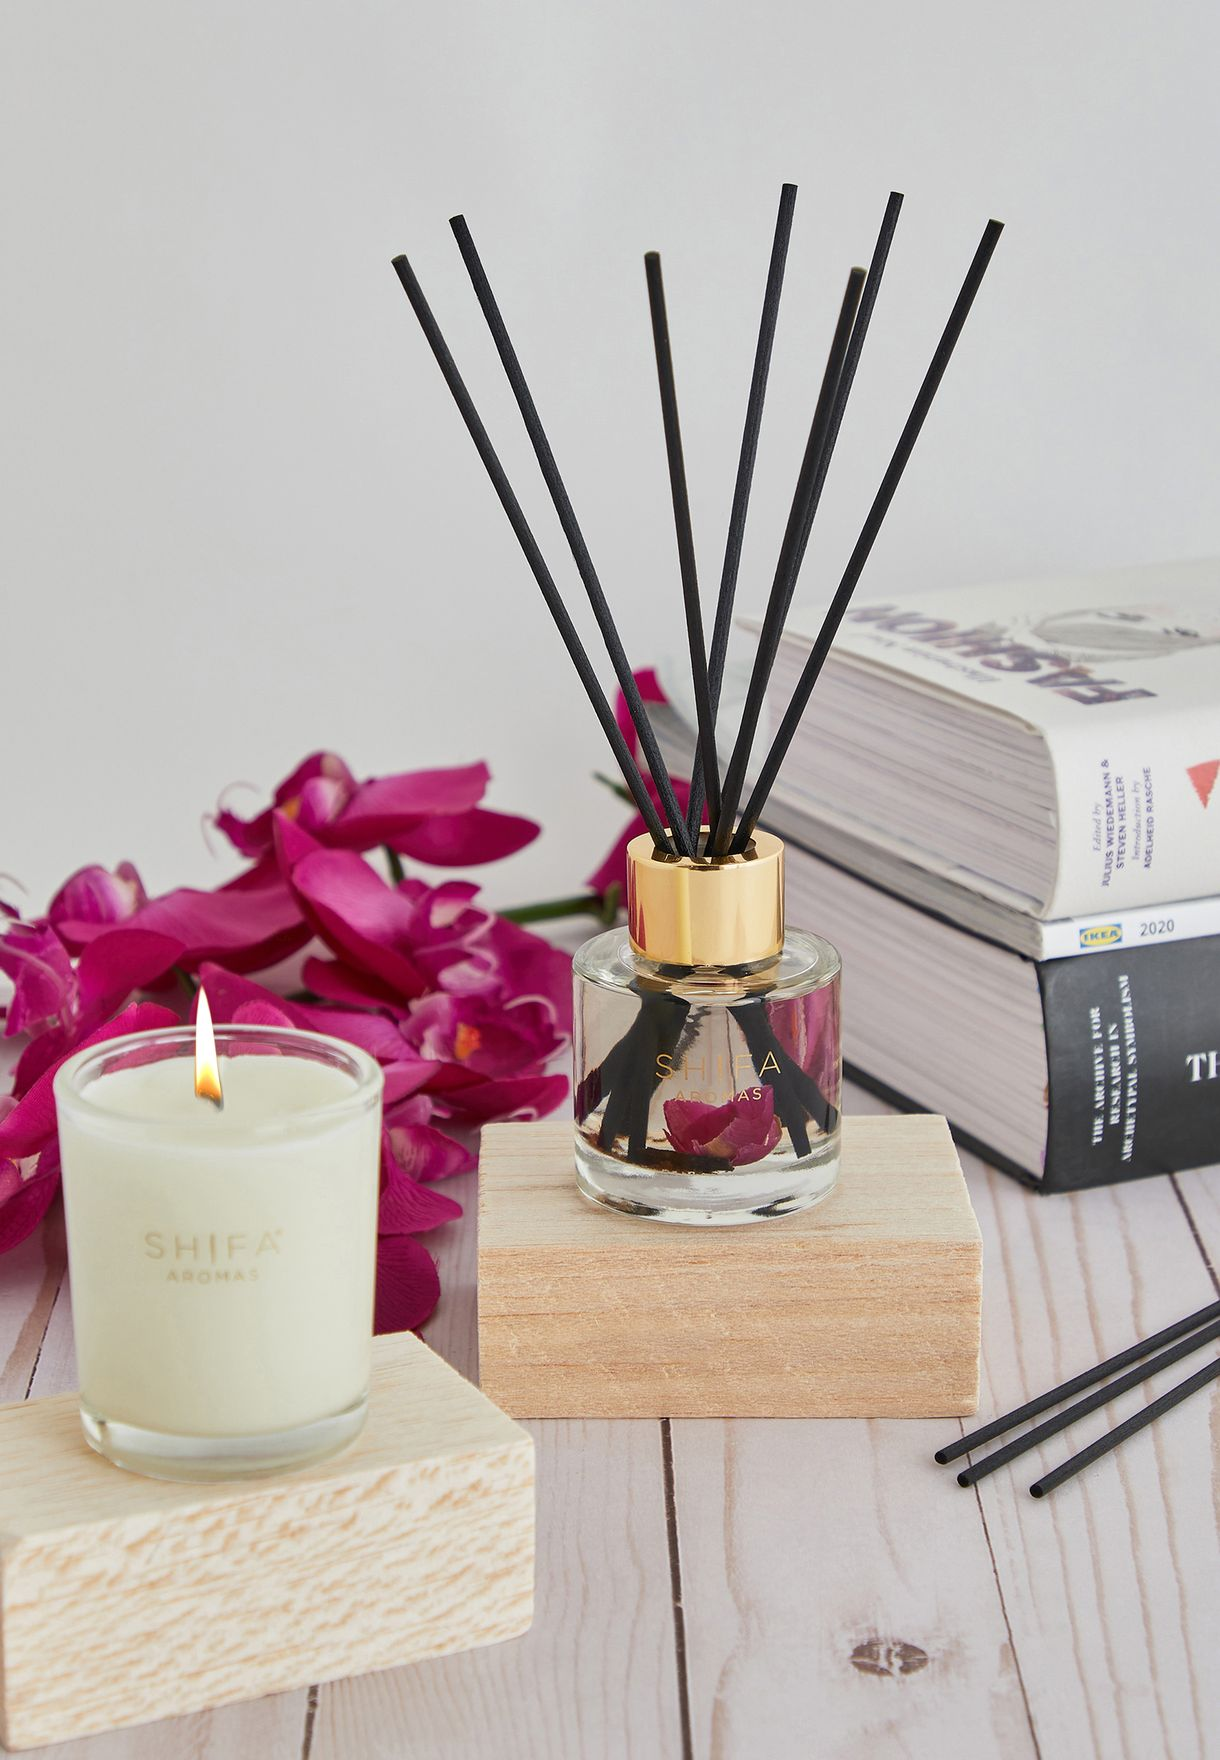 Rose Otto, Oud & Peony Candle & Diffuser Set